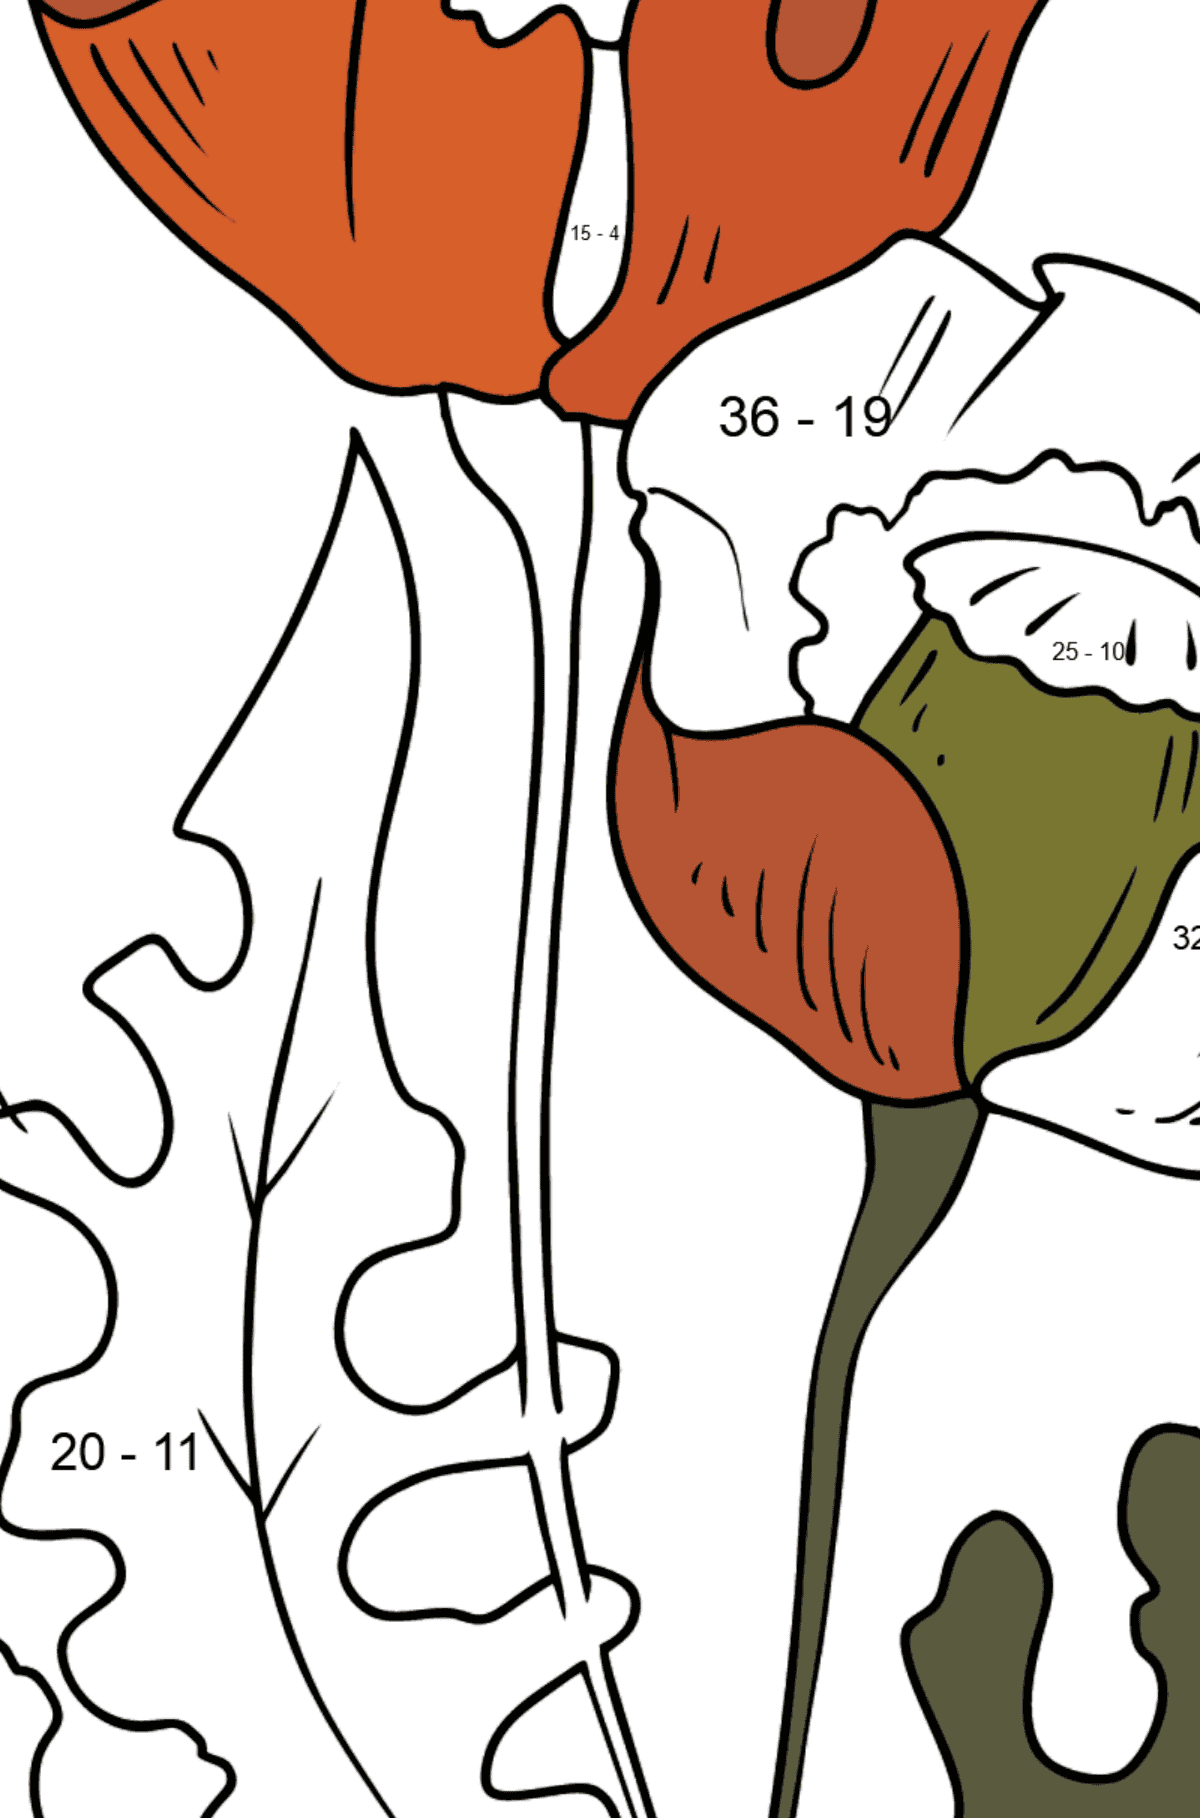 Flower Coloring Page - Beautiful Poppies - Math Coloring - Subtraction for Kids